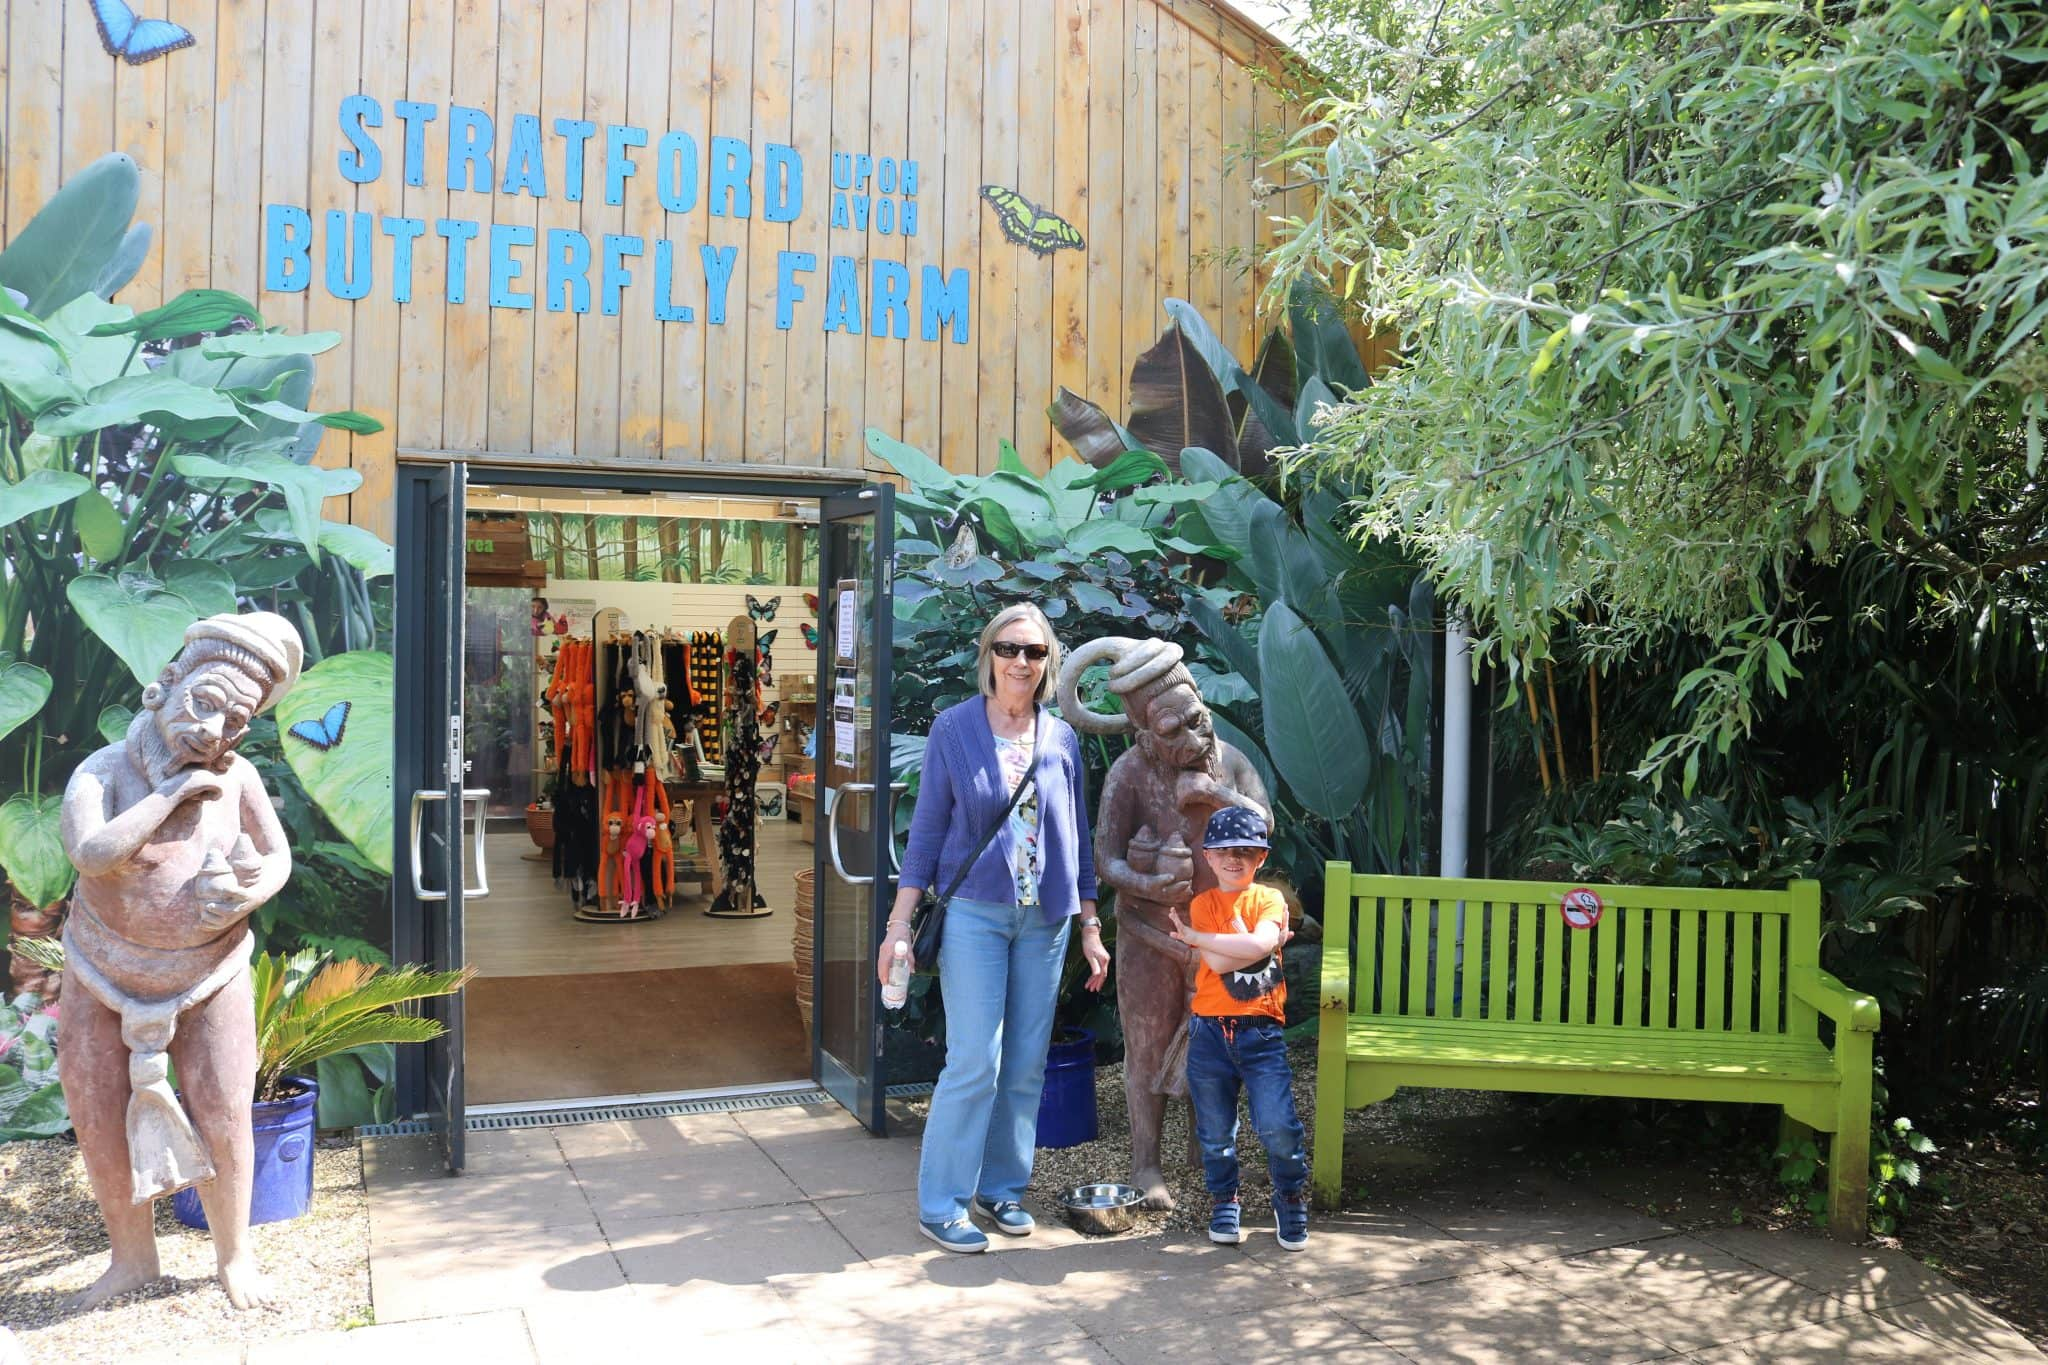 Butterfly Farm Stratford-Upon-Avon | Review | Find Out What It's Like Inside